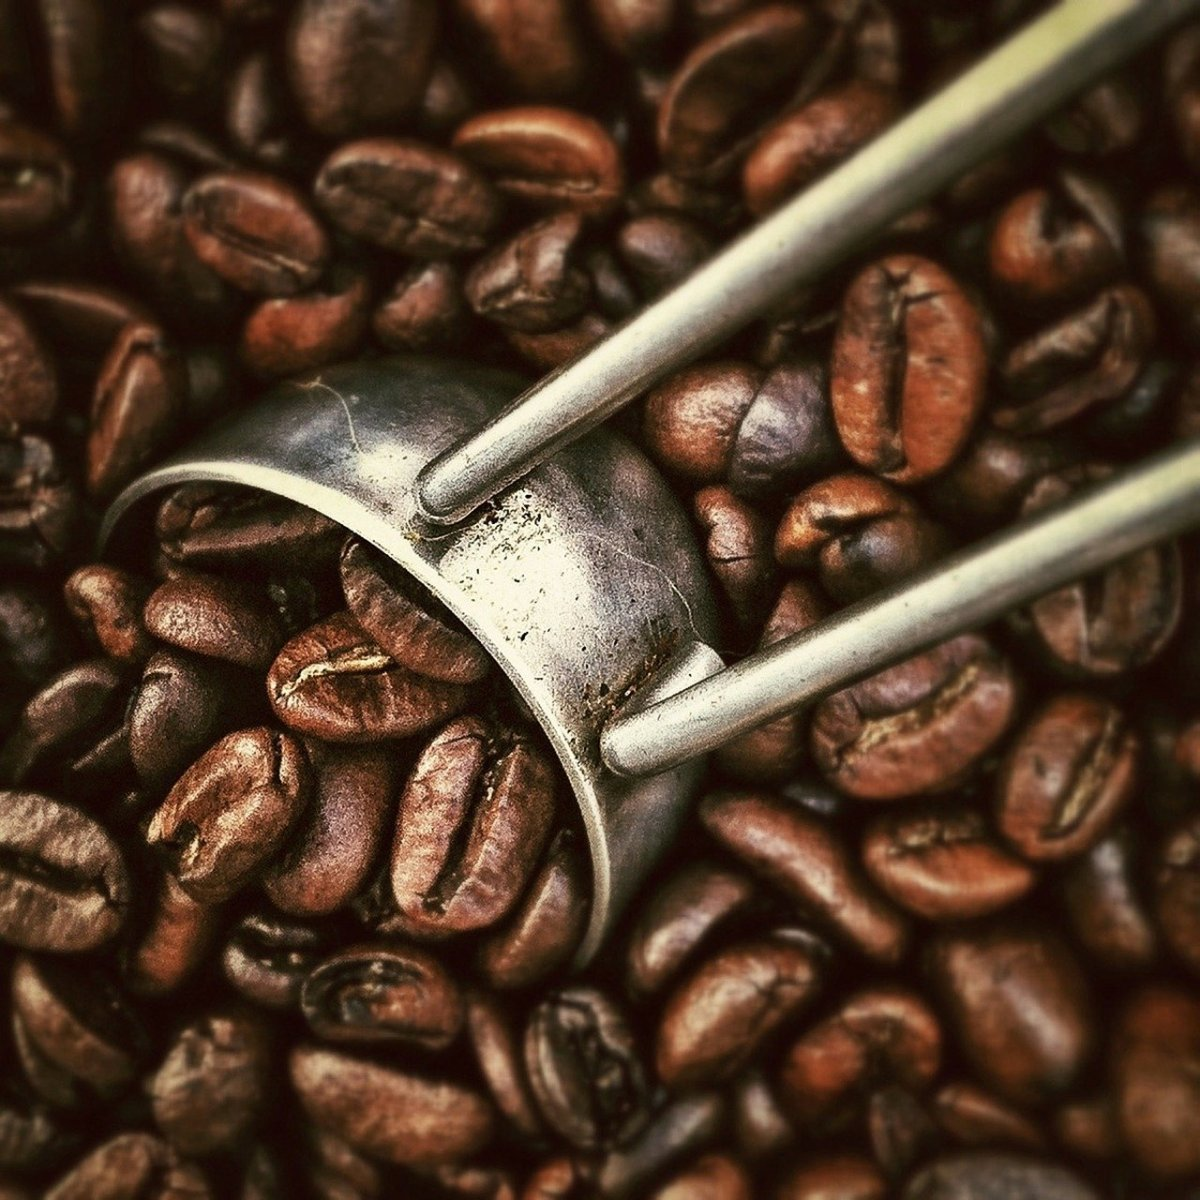 Get some advice about starting a business as a coffee roaster.